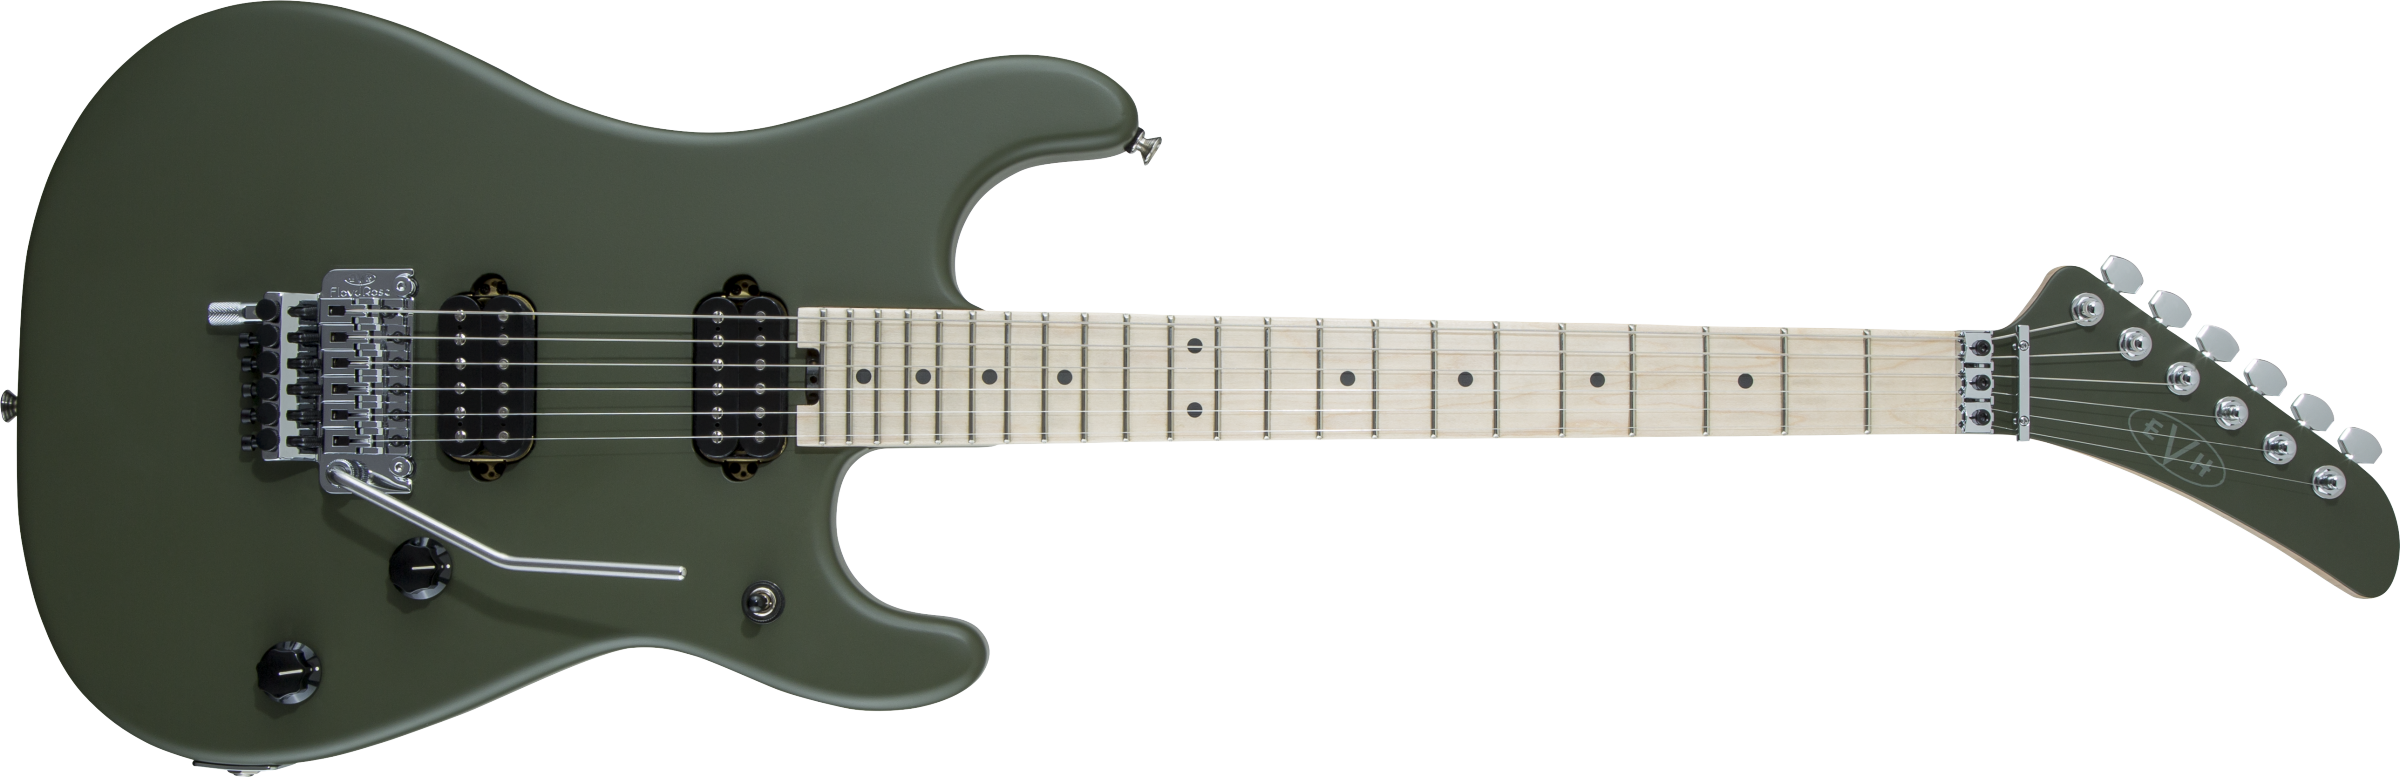 5150® Series Standard, Maple Fingerboard, Matte Army Drab